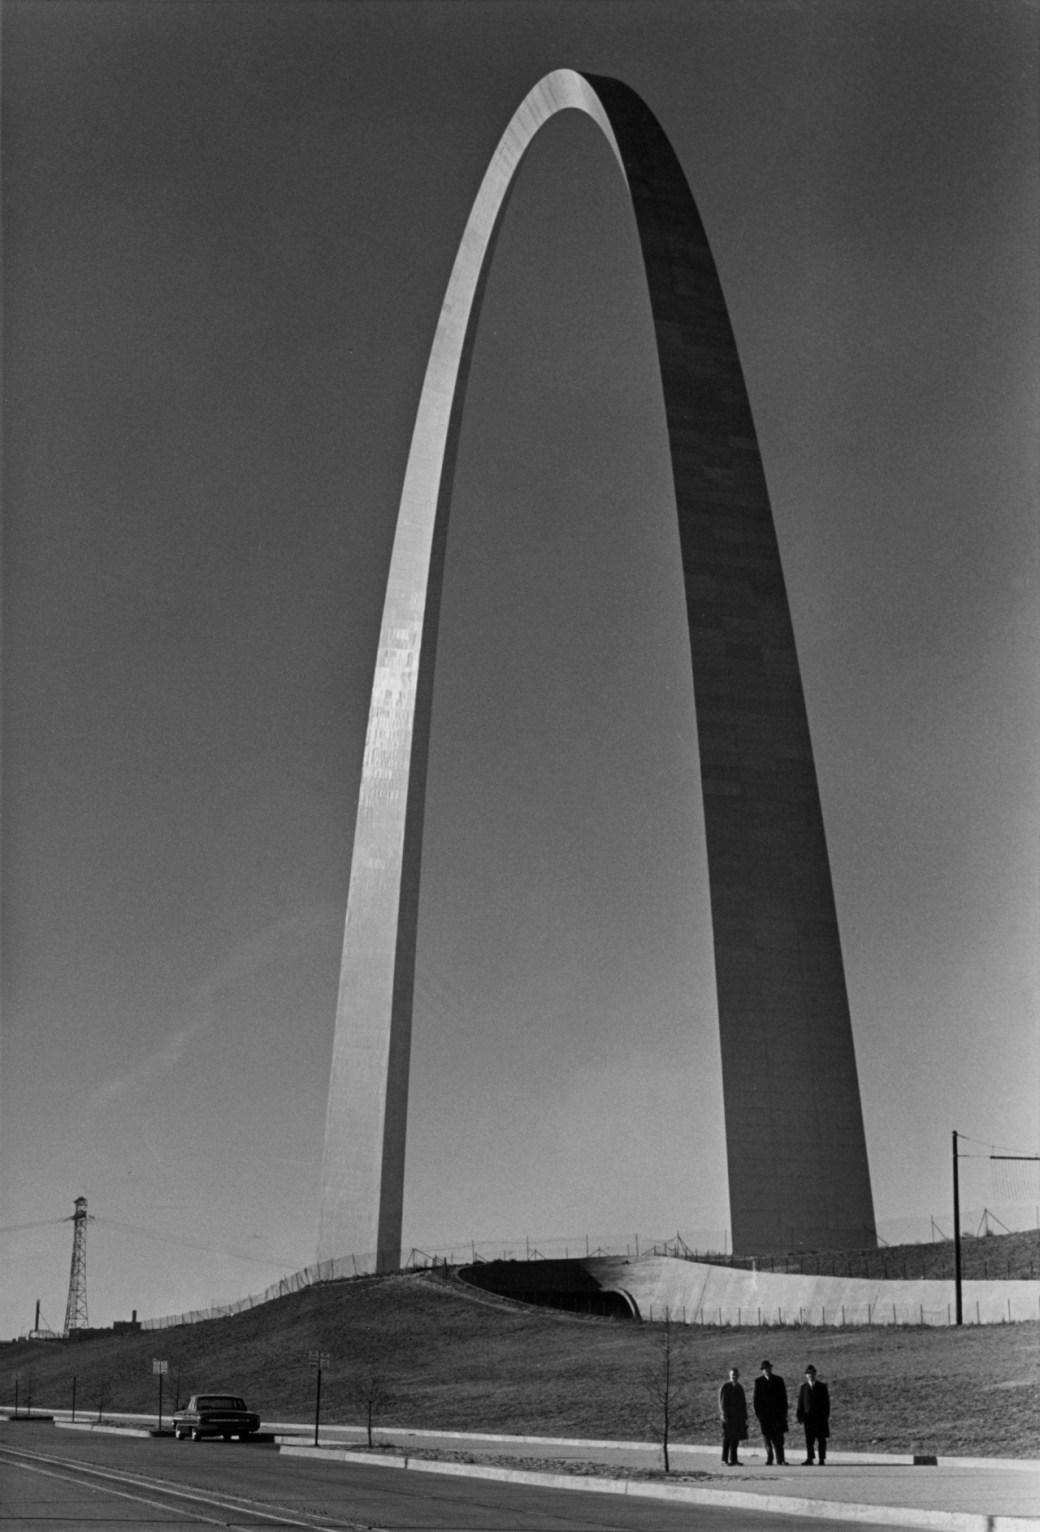 Eero Saarinen's Gateway Arch, designed in 1947, completed 1963-1965.